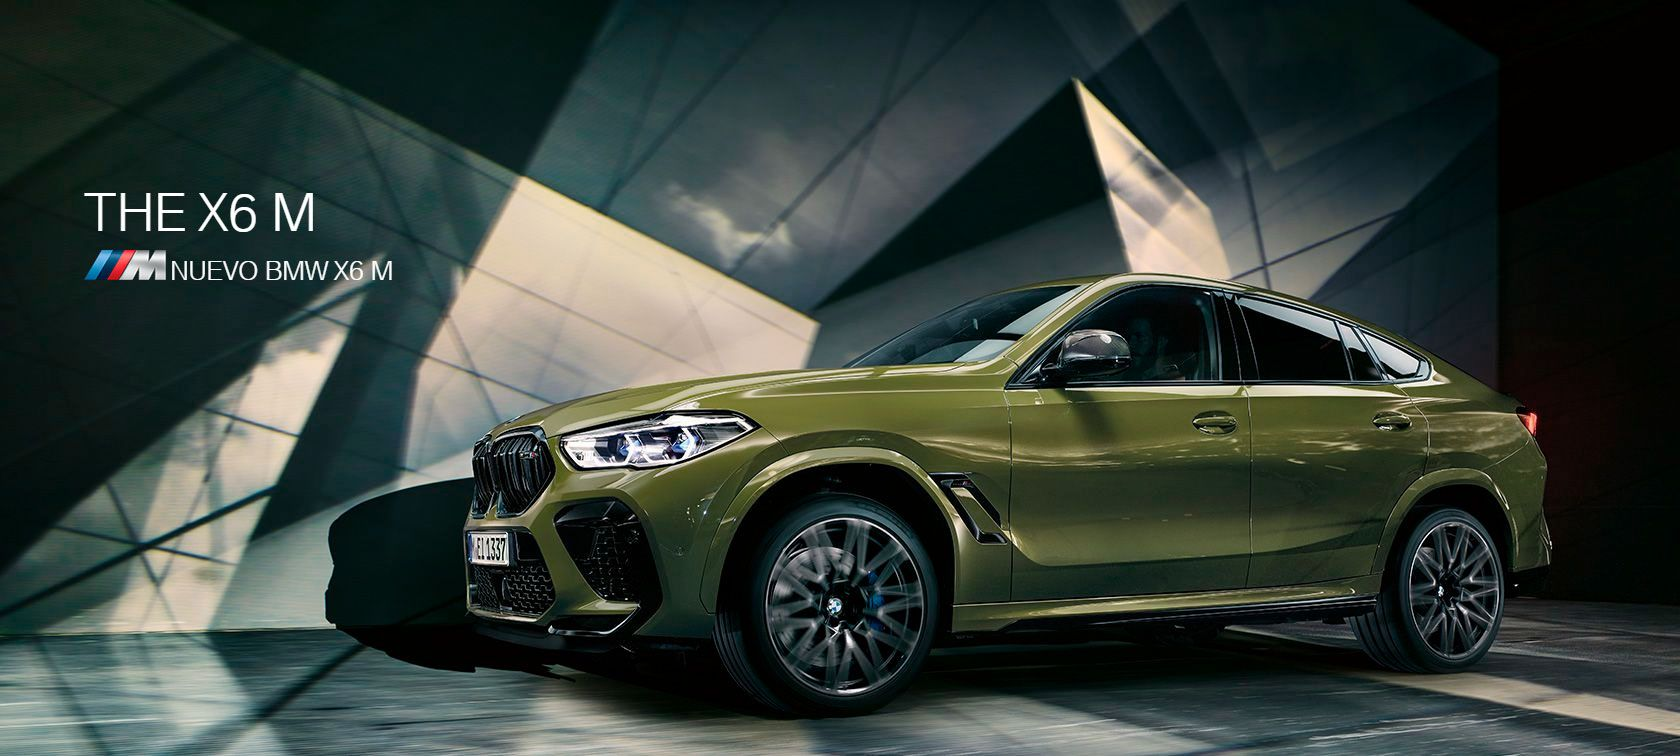 THE X6.